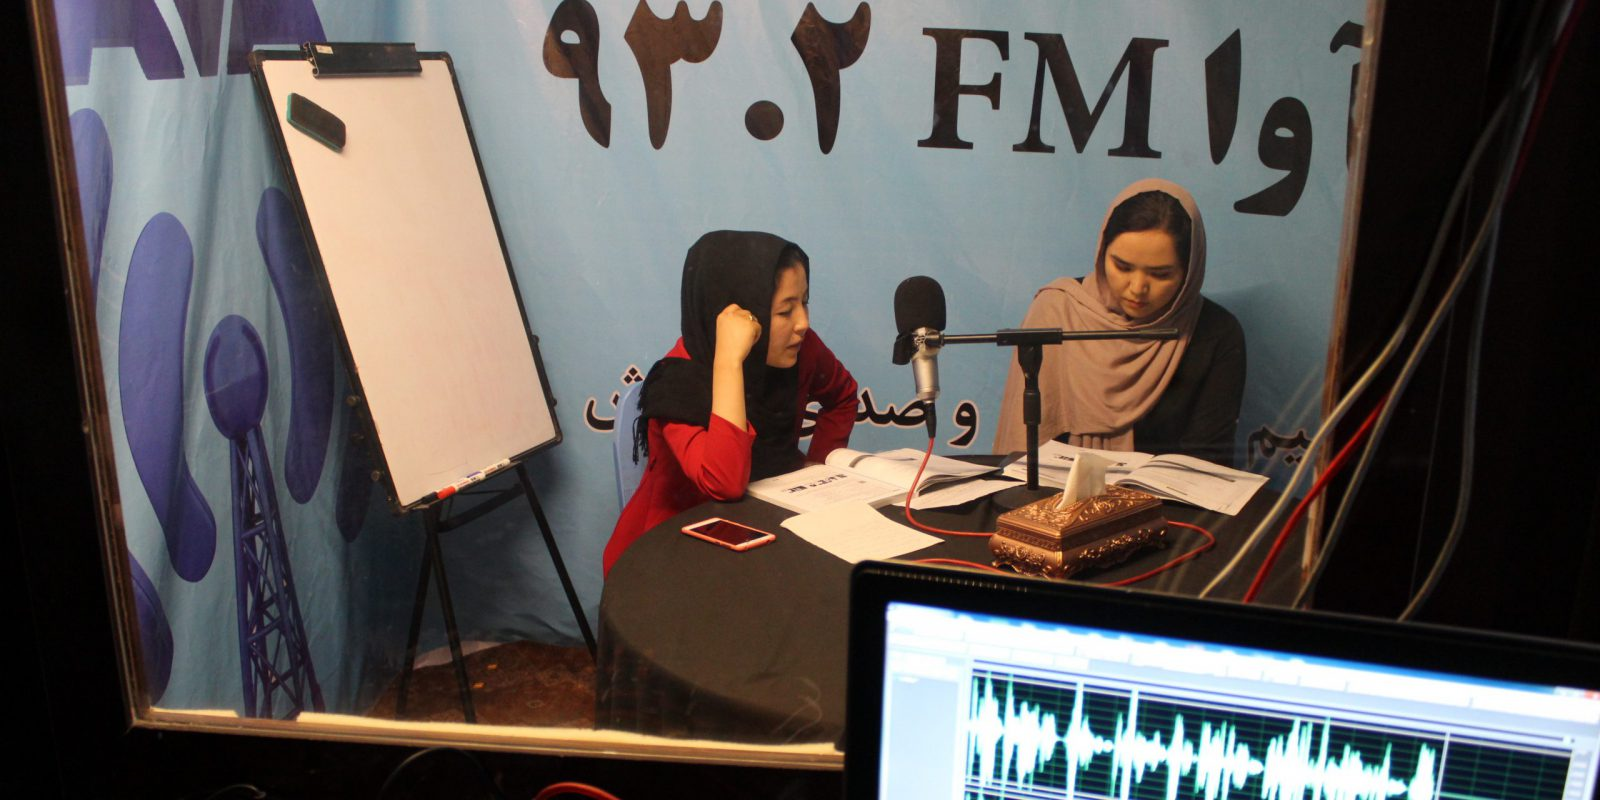 JRS Afghanistan is running English language lesson broadcasts on Herat-AVA radio station to reach marginalised communities.